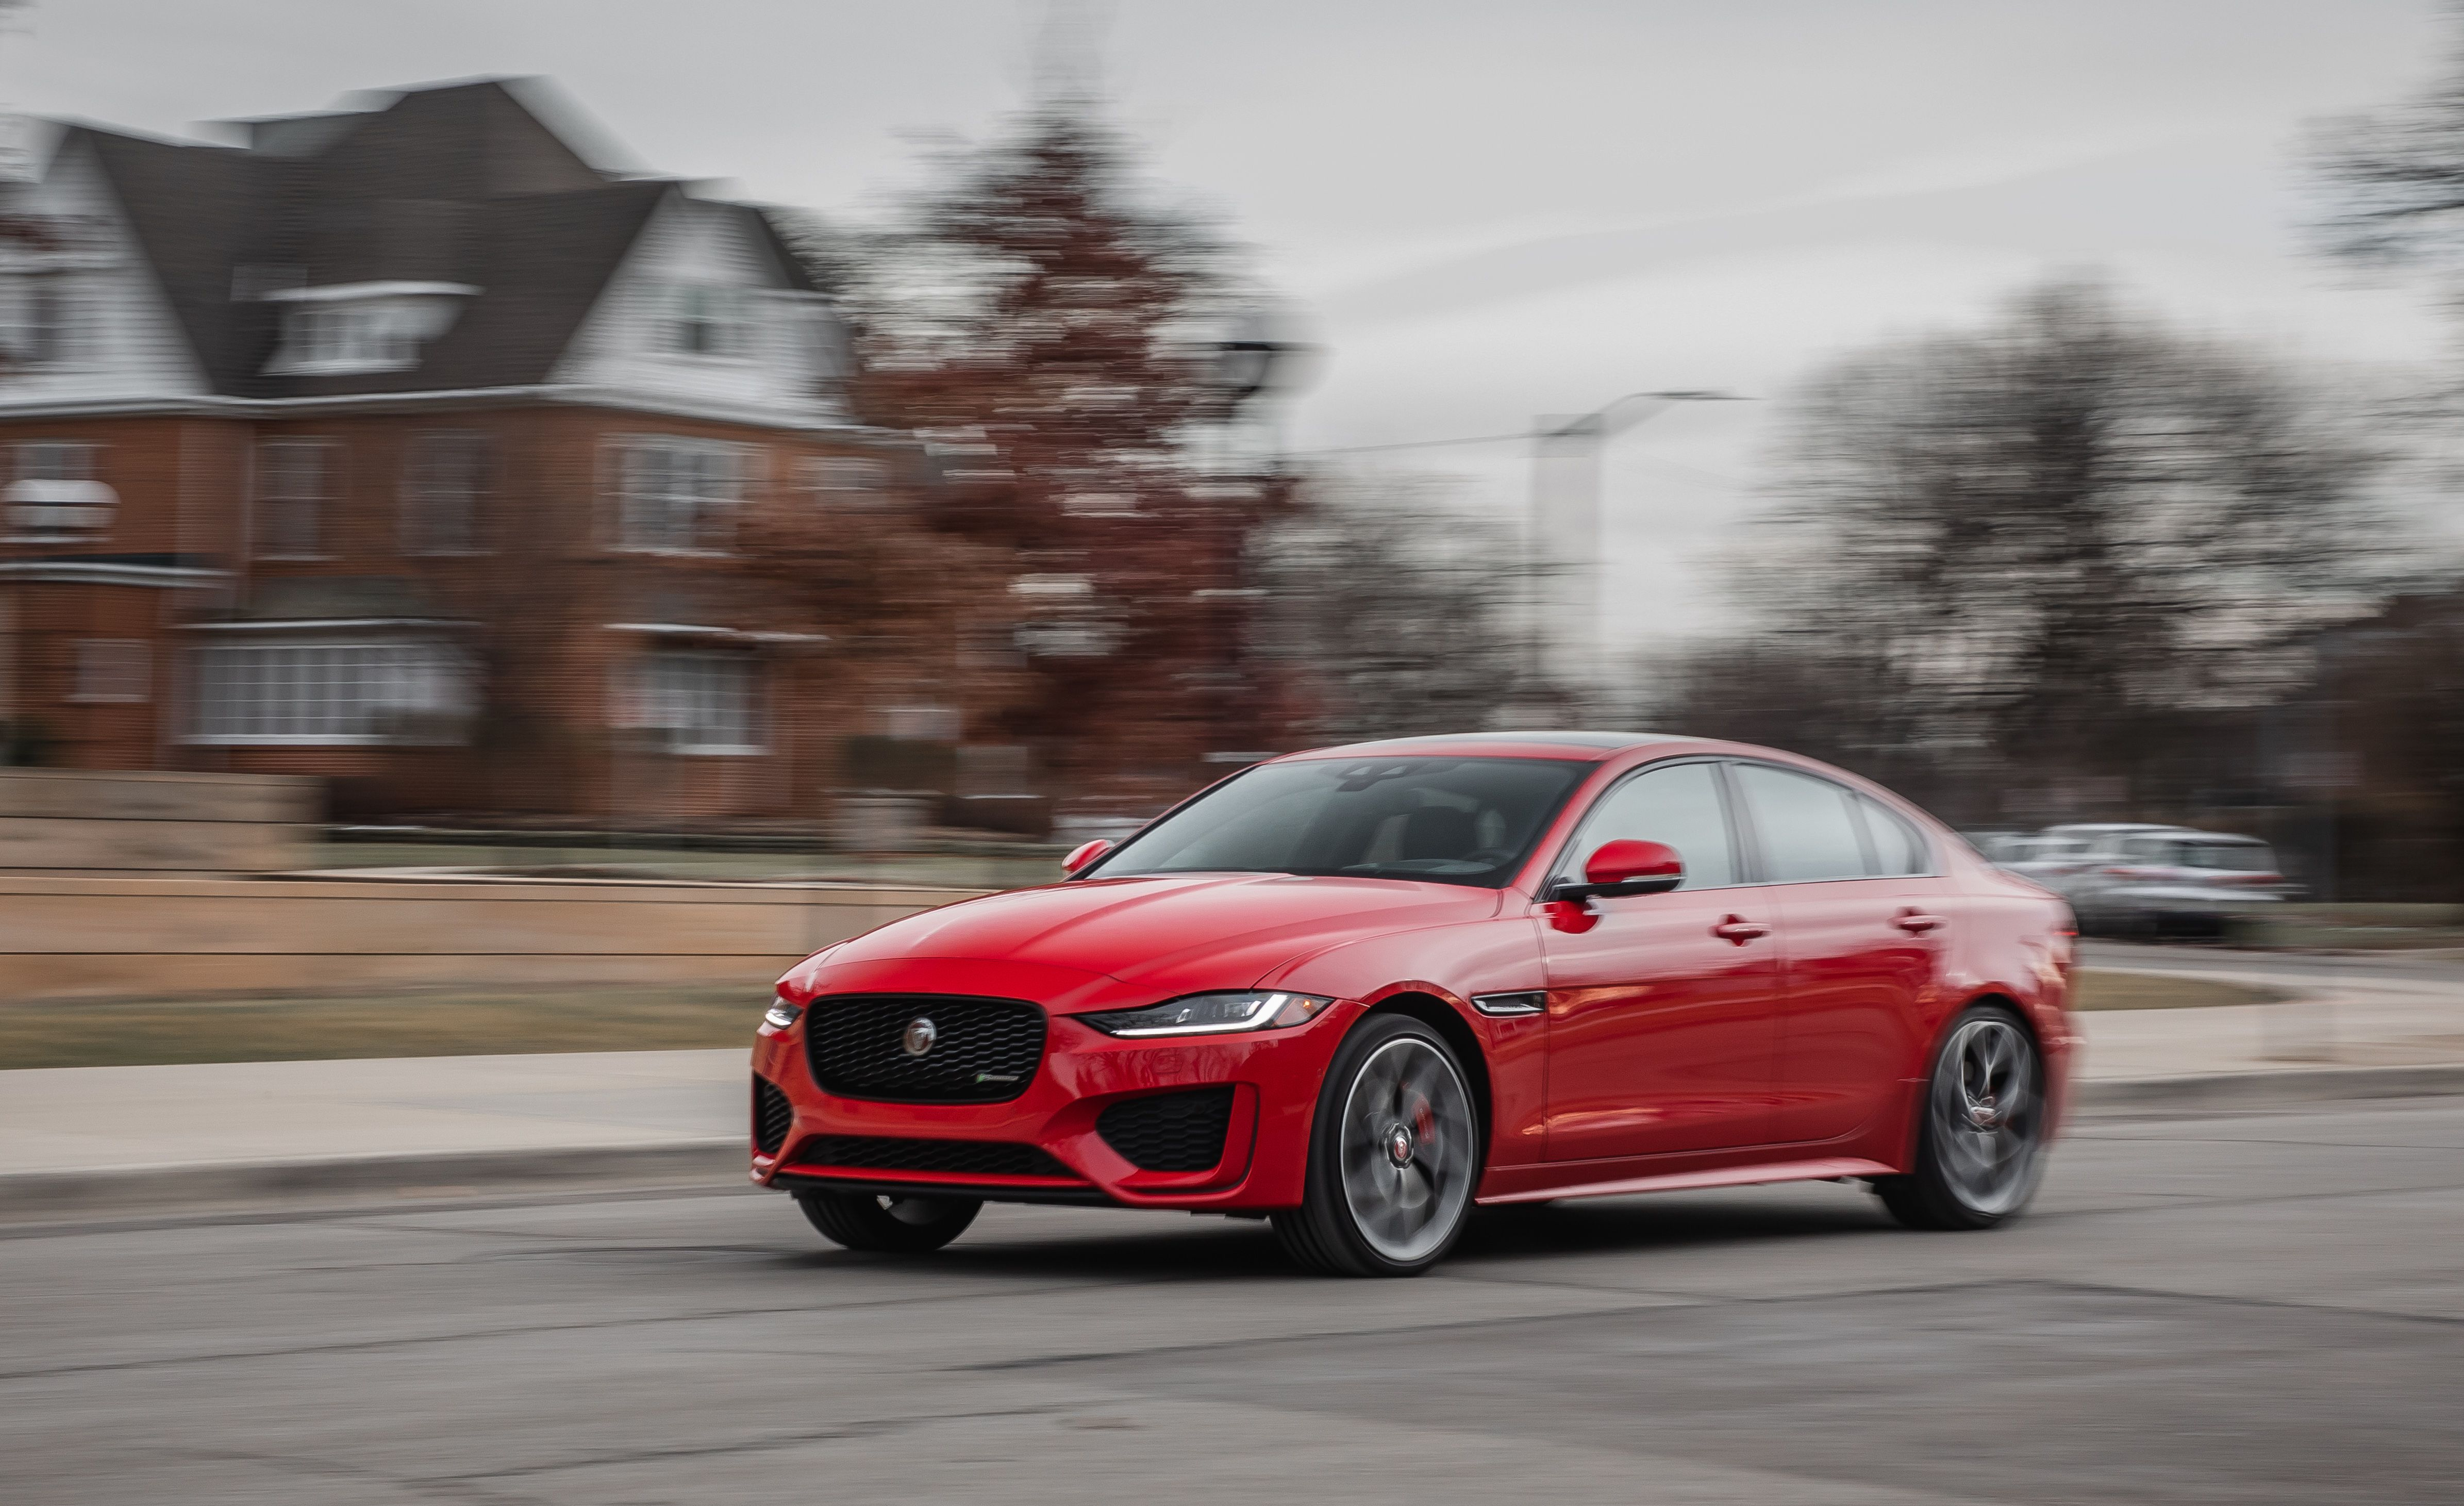 2020 Jaguar Xe Sedan Review